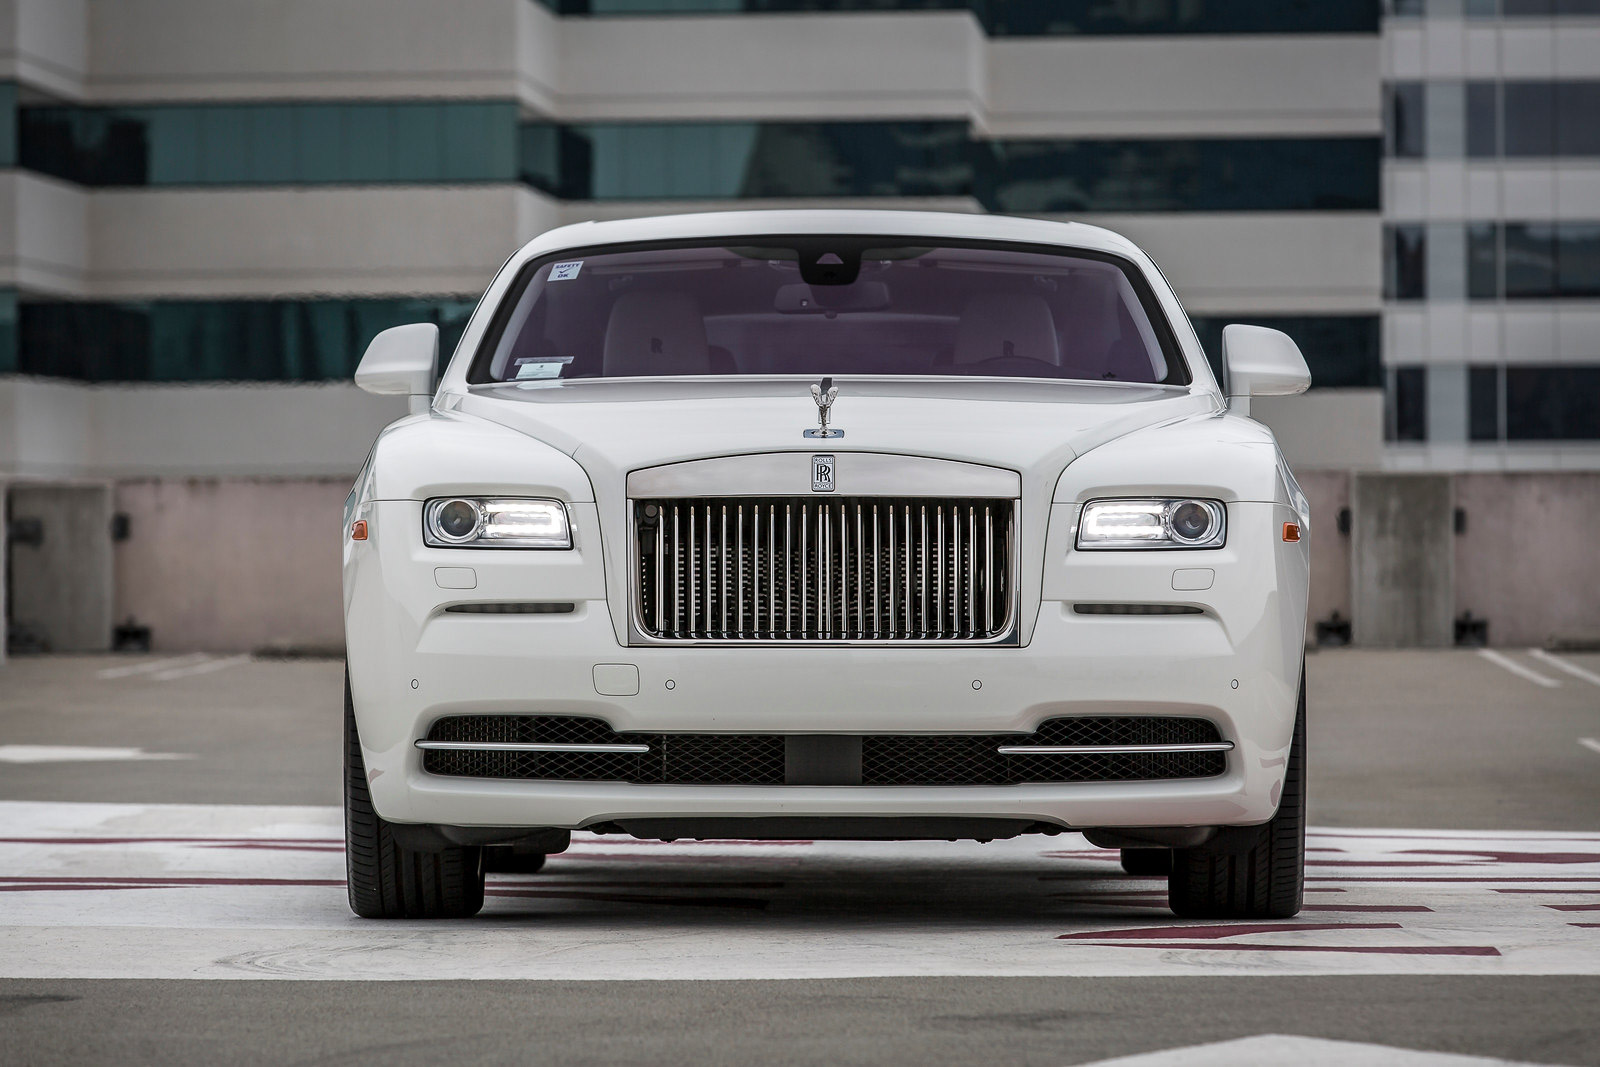 Rolls Royce Wraith Front Clear Bra Protection - Protective Film Solutions